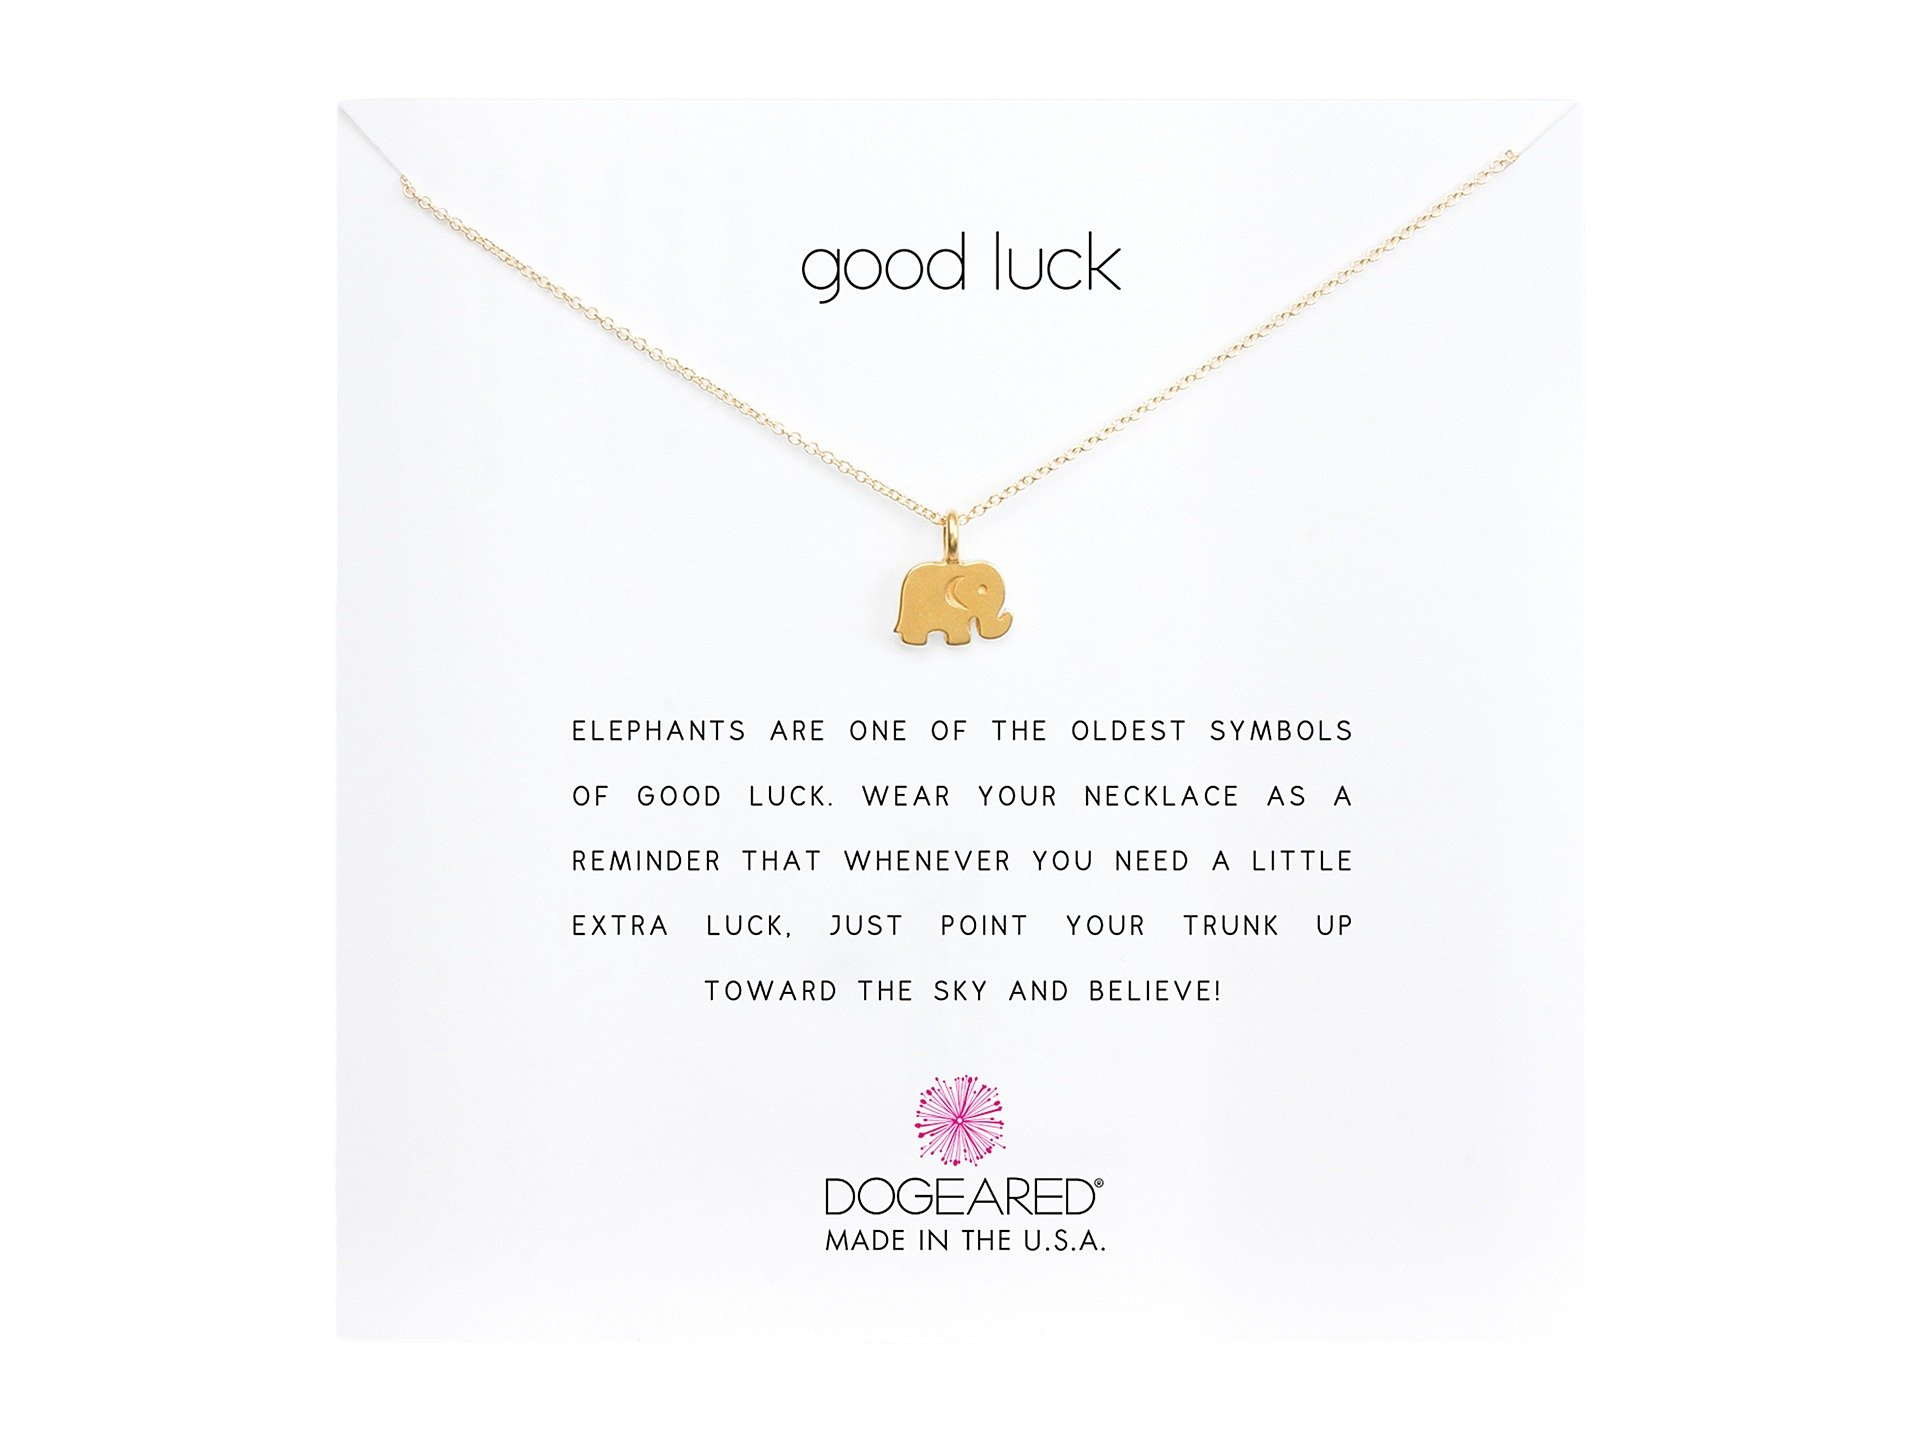 Dogeared good luck elephant reminder necklace at zappos main biocorpaavc